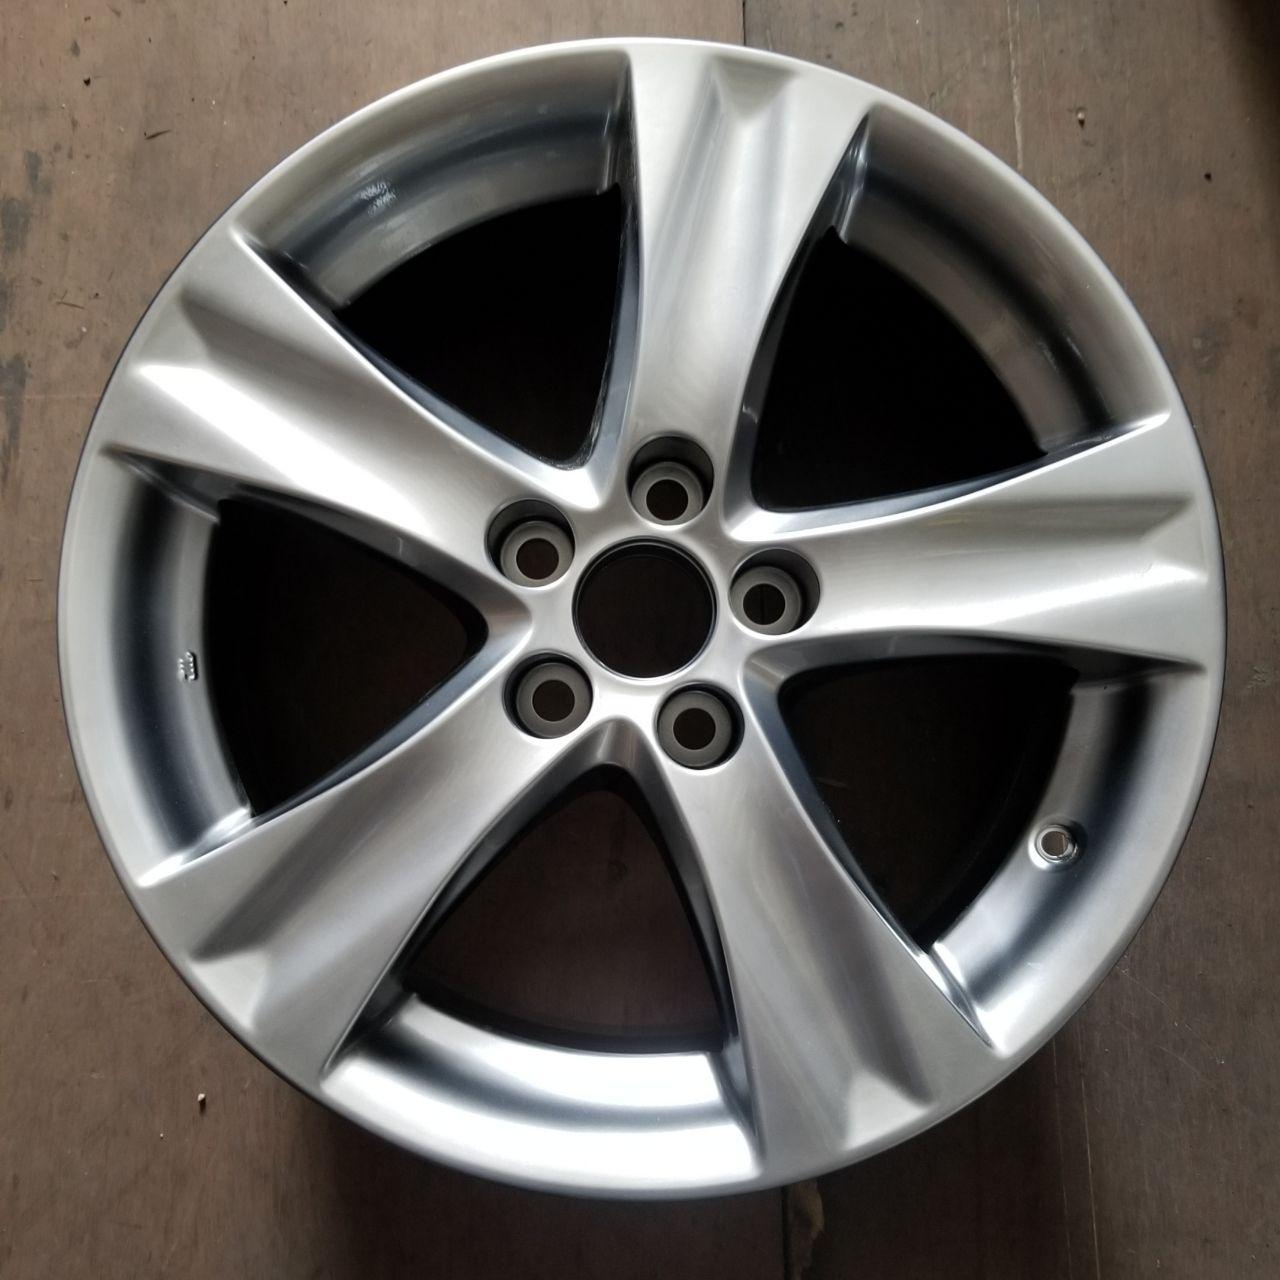 - OEM WHEELS - 2011-2013 LEXUS IS250/IS350 18x8.5 5 SPOKE Hollander #74239 /  USED